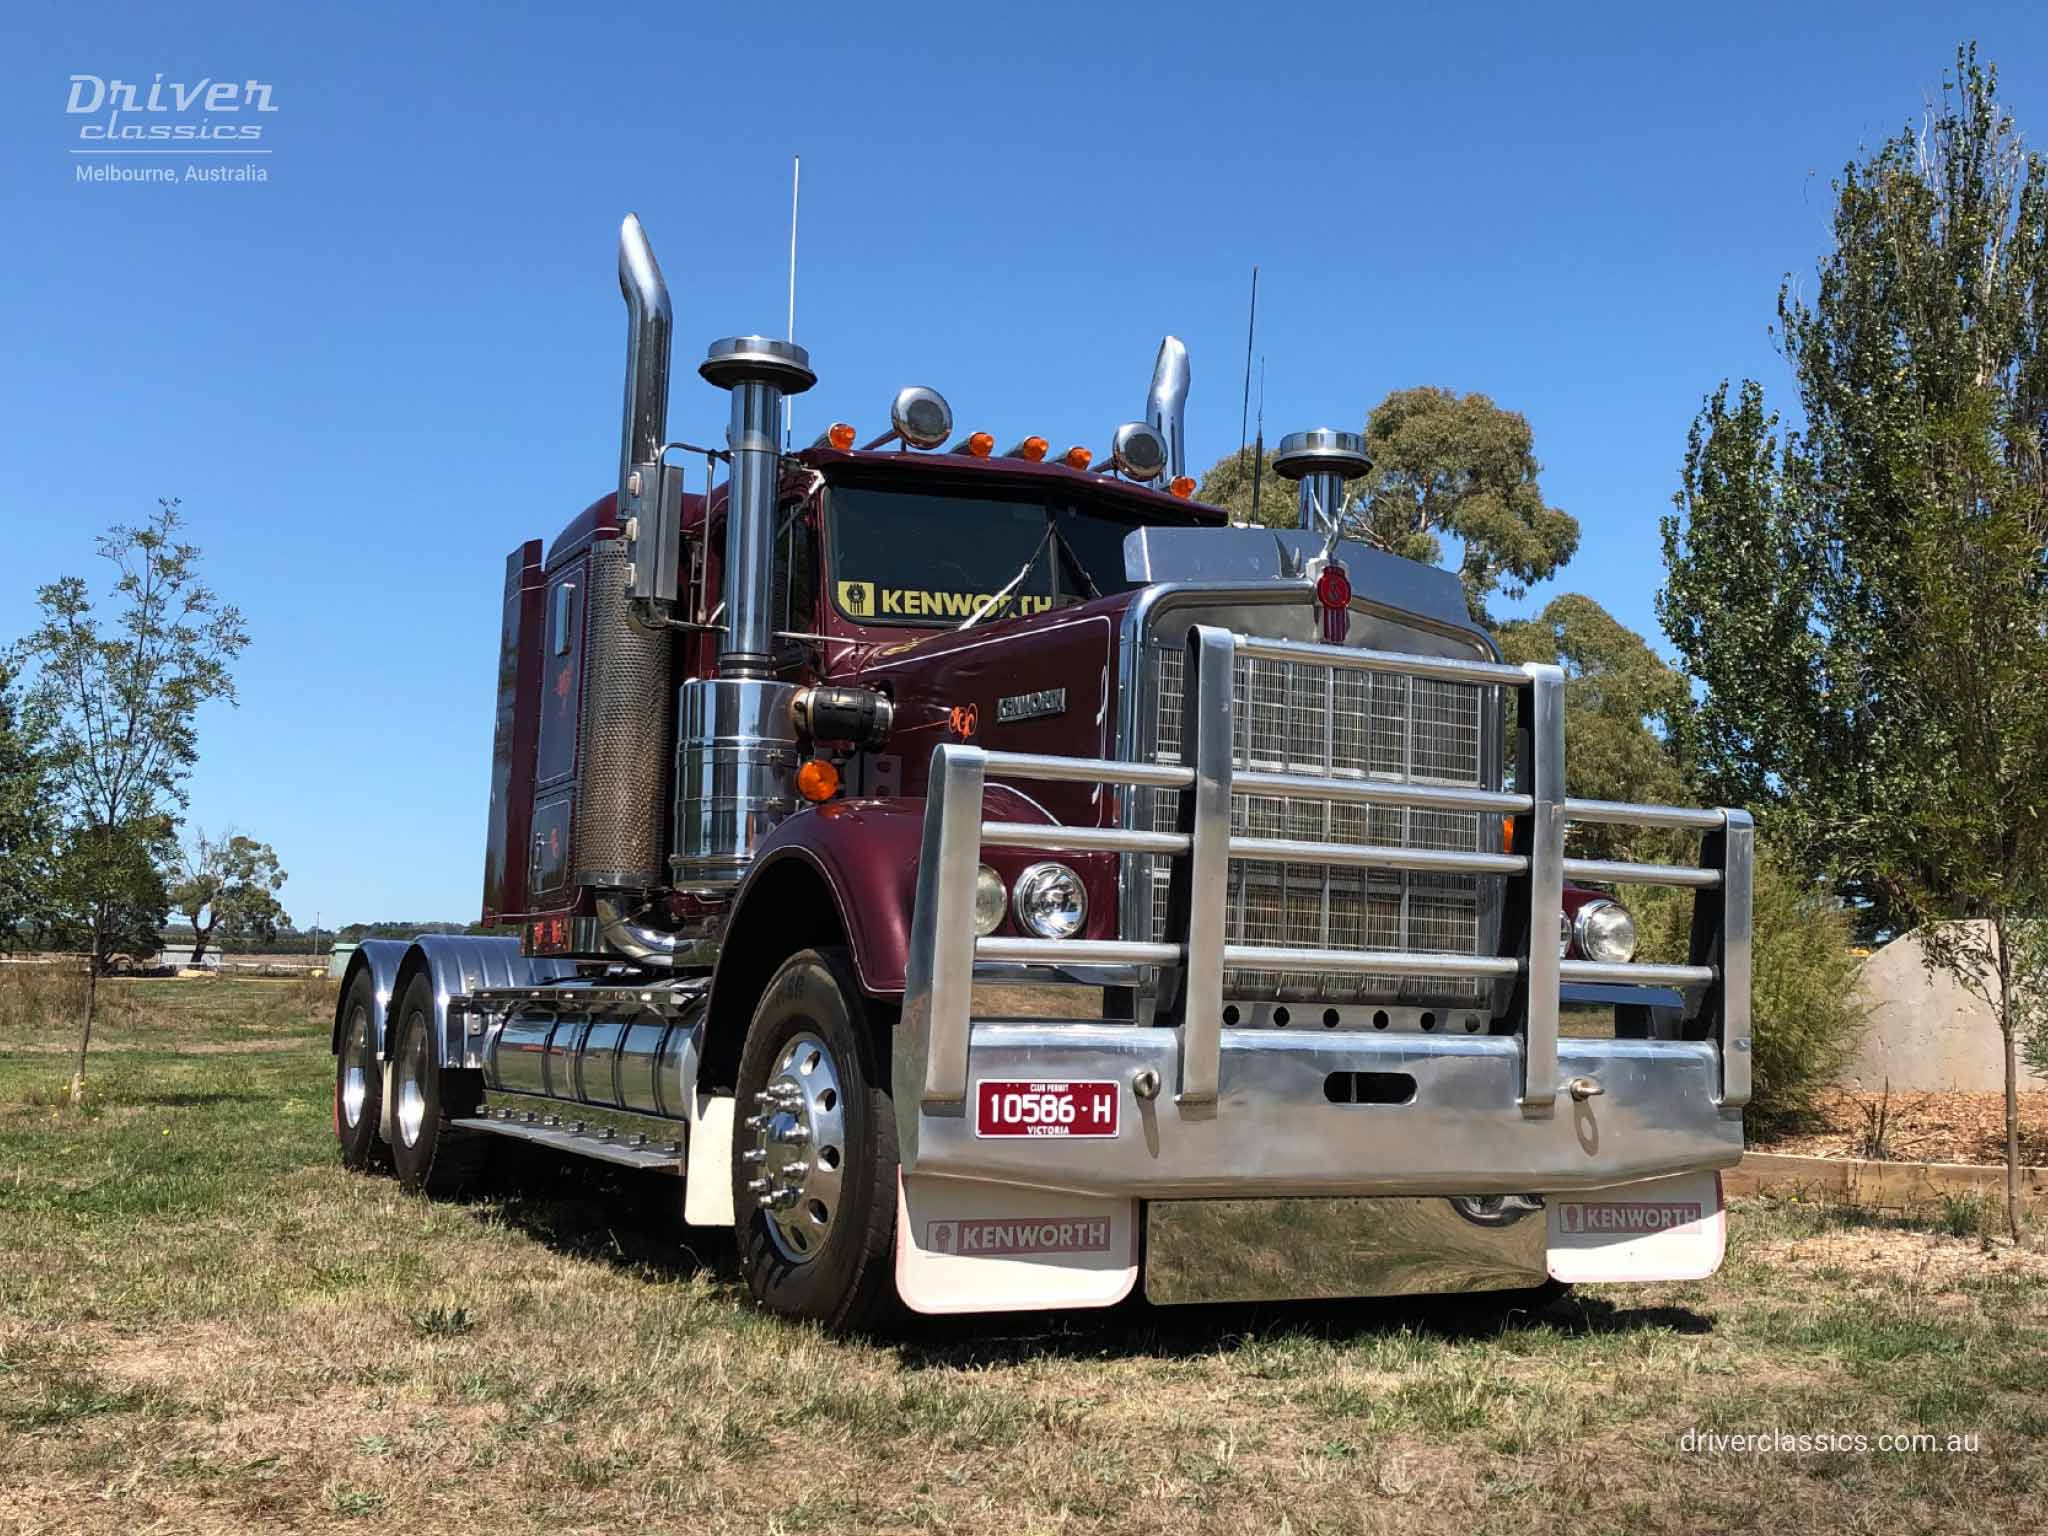 Kenworth W925 Truck, 1986 version, front and side, at Lancefield VIC, Photo taken Feb 2019